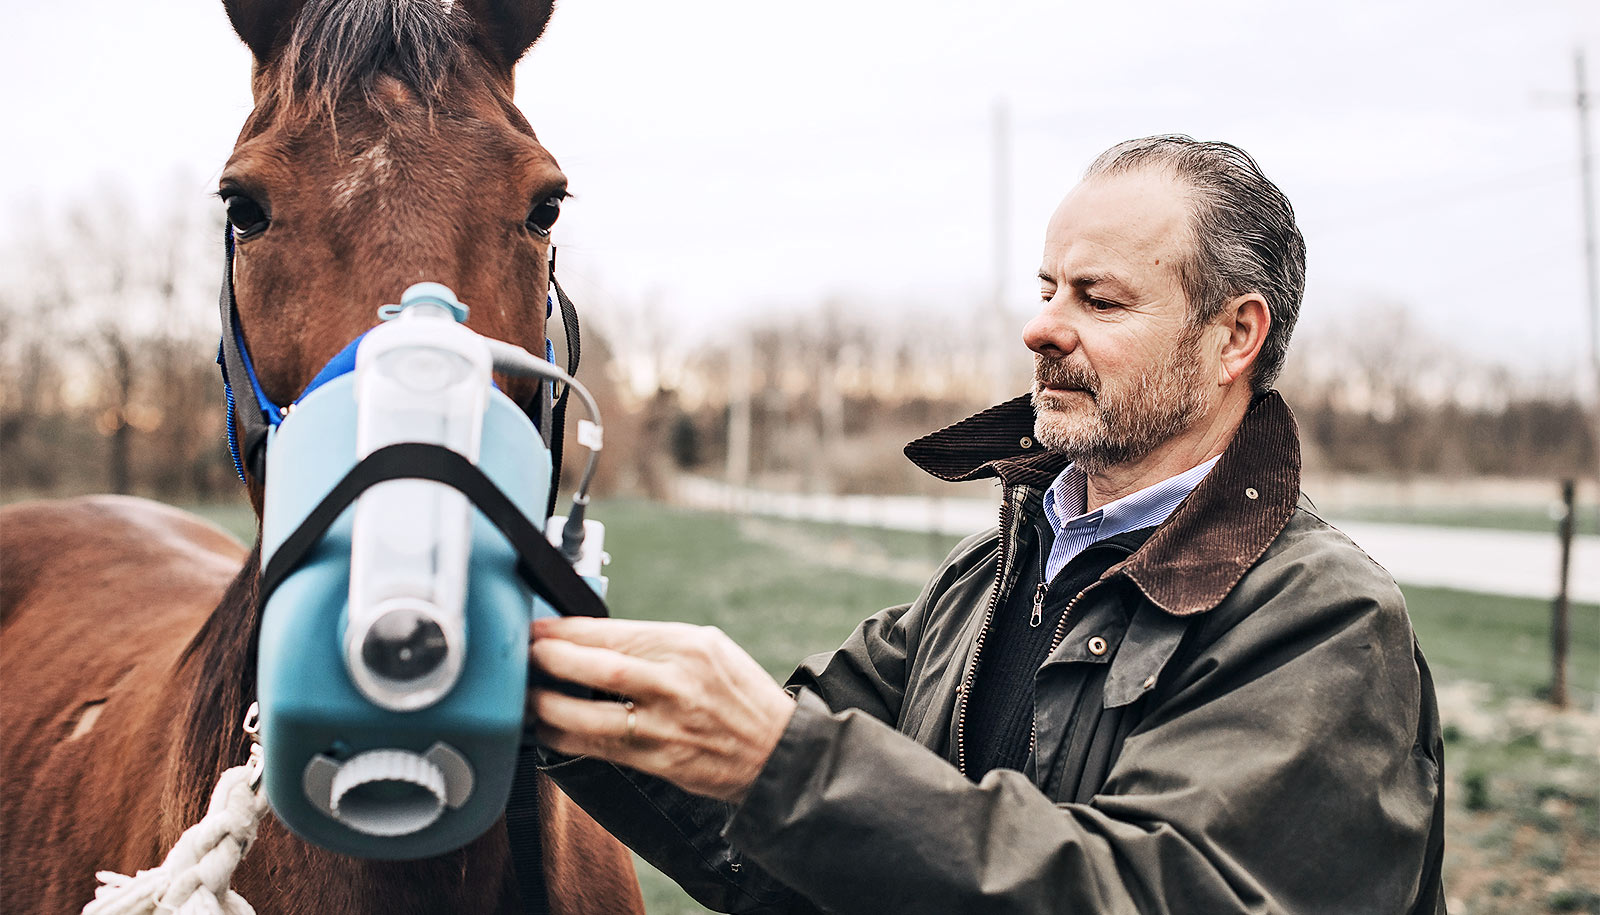 Asthma can keep horses from winning races